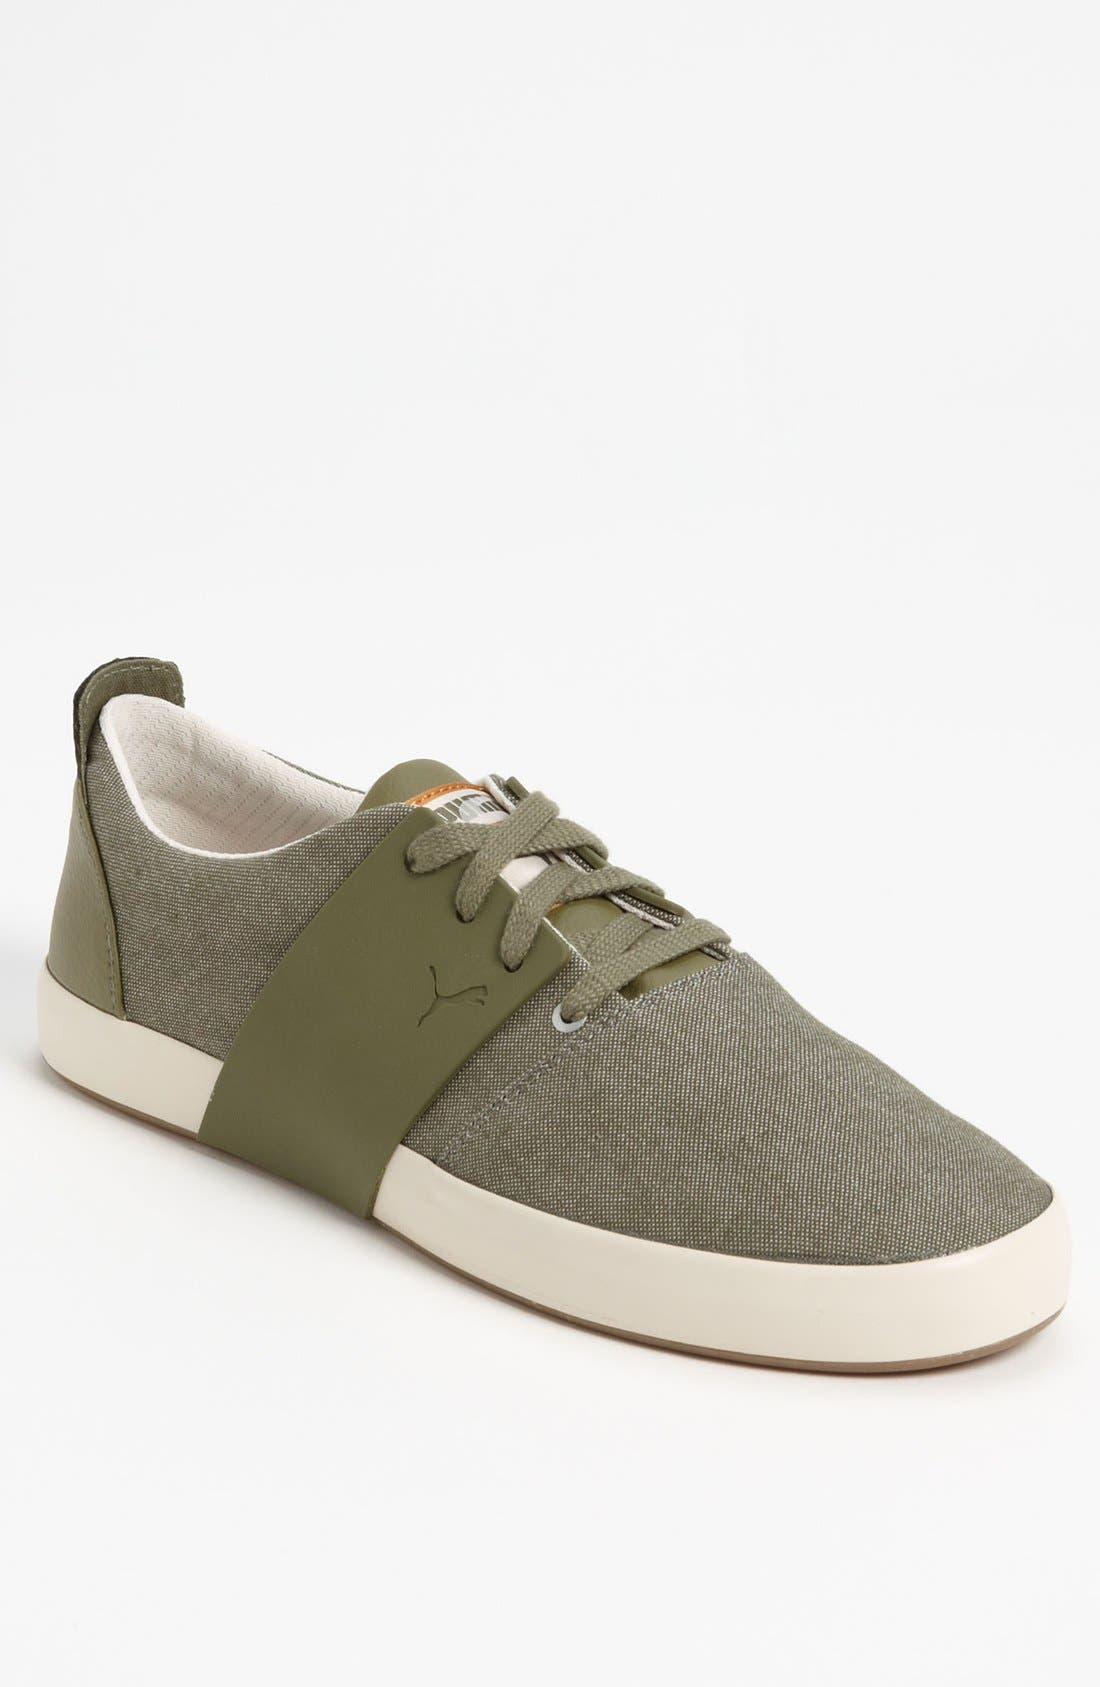 Main Image - PUMA 'El Ace 3' Chambray Sneaker (Men)